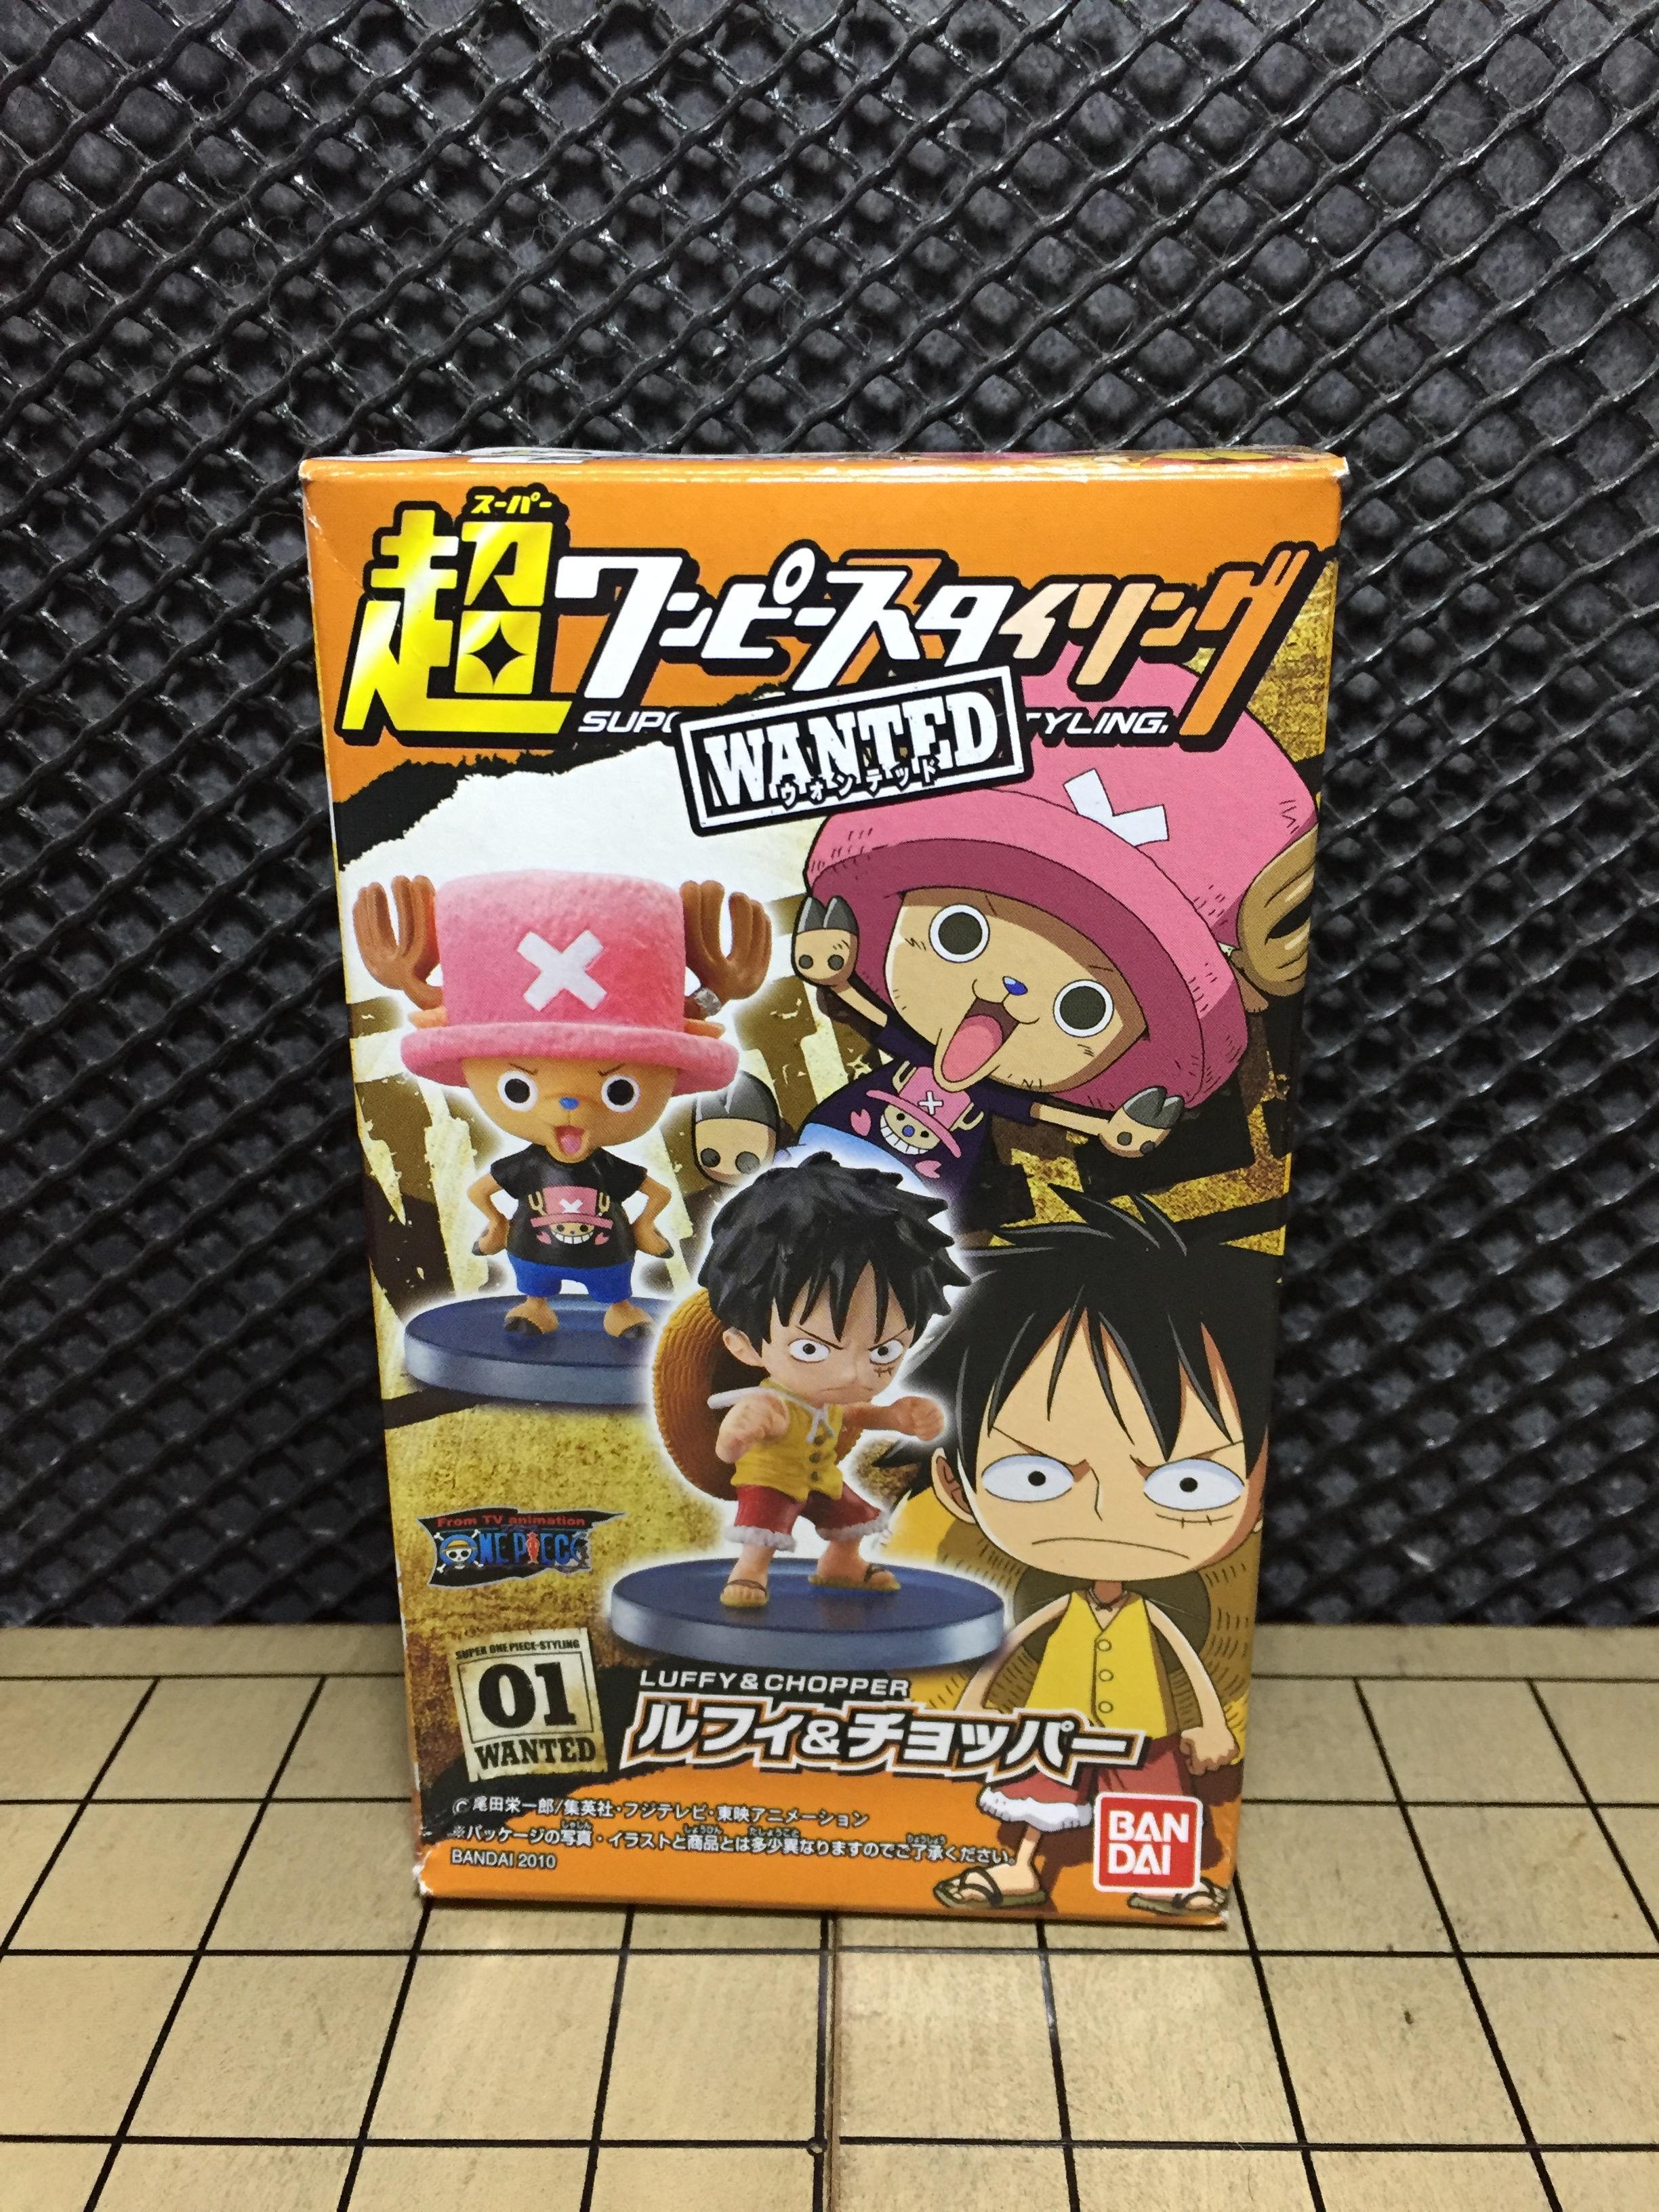 Super Onepiece - Styling 01 Wanted ( Luffy&Chopper )